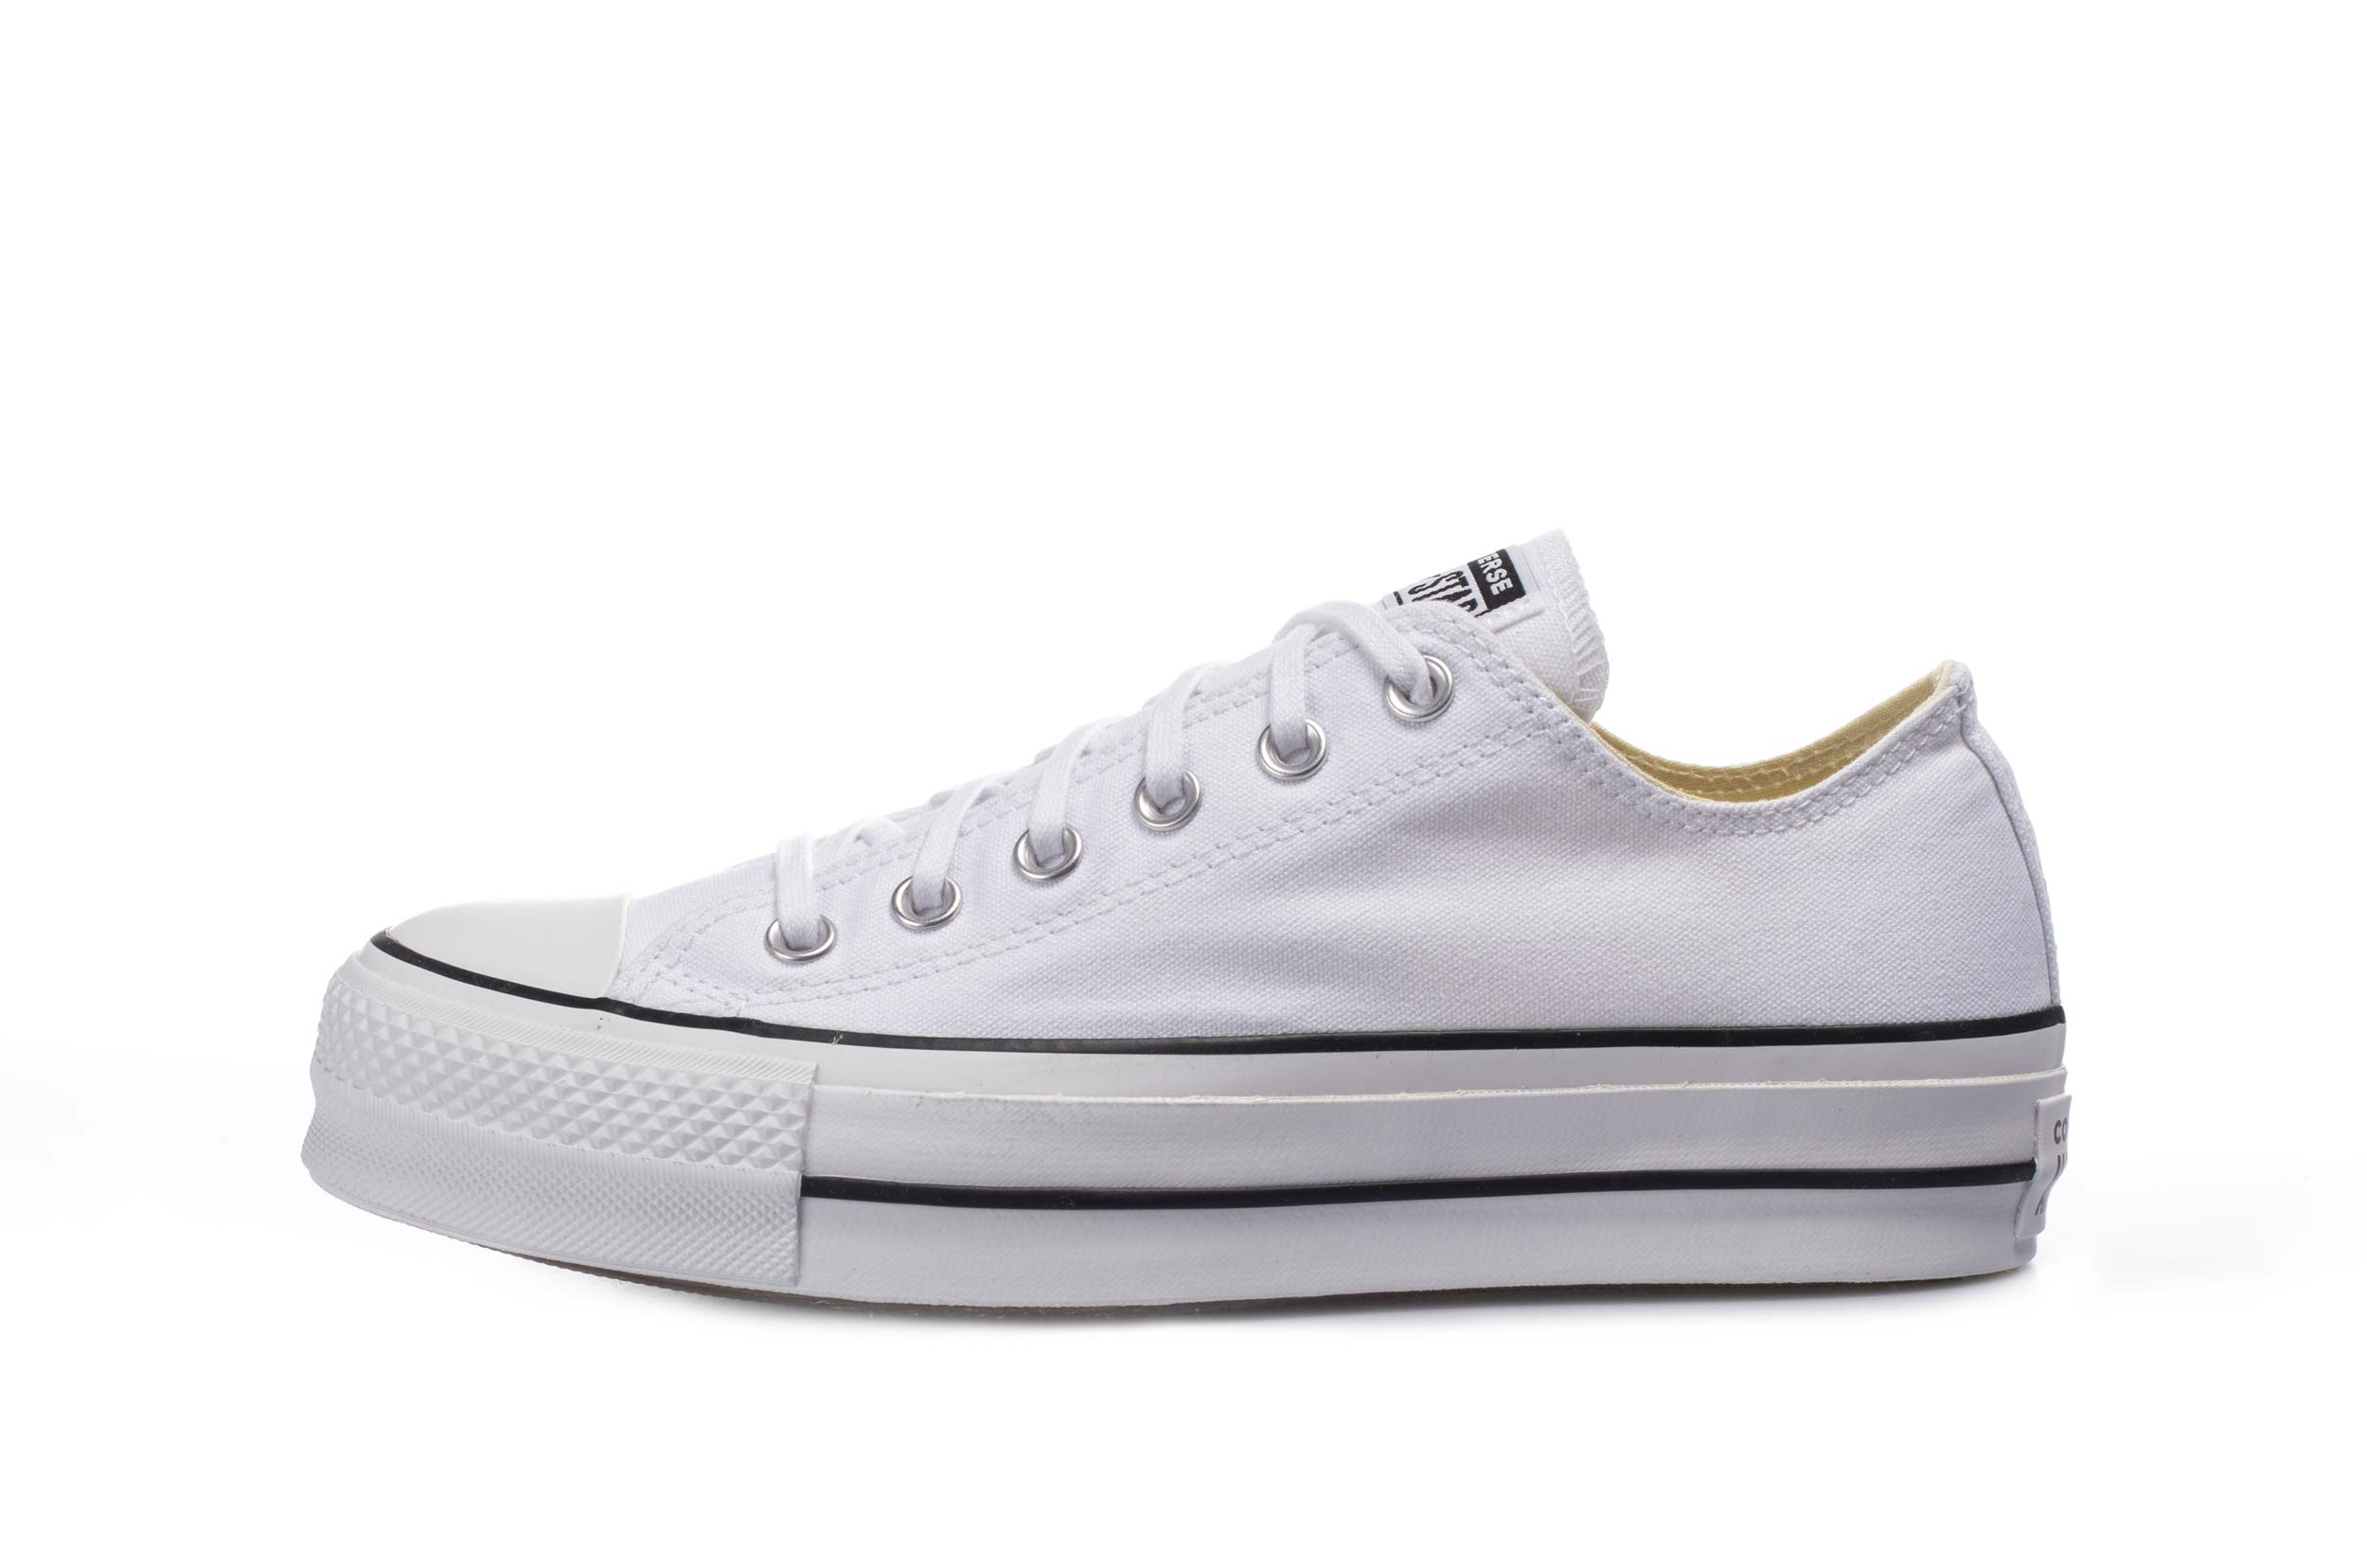 Converse CHUCK TAYLOR ALL STAR PLATFORM LOW TOP 560251C Λευκό